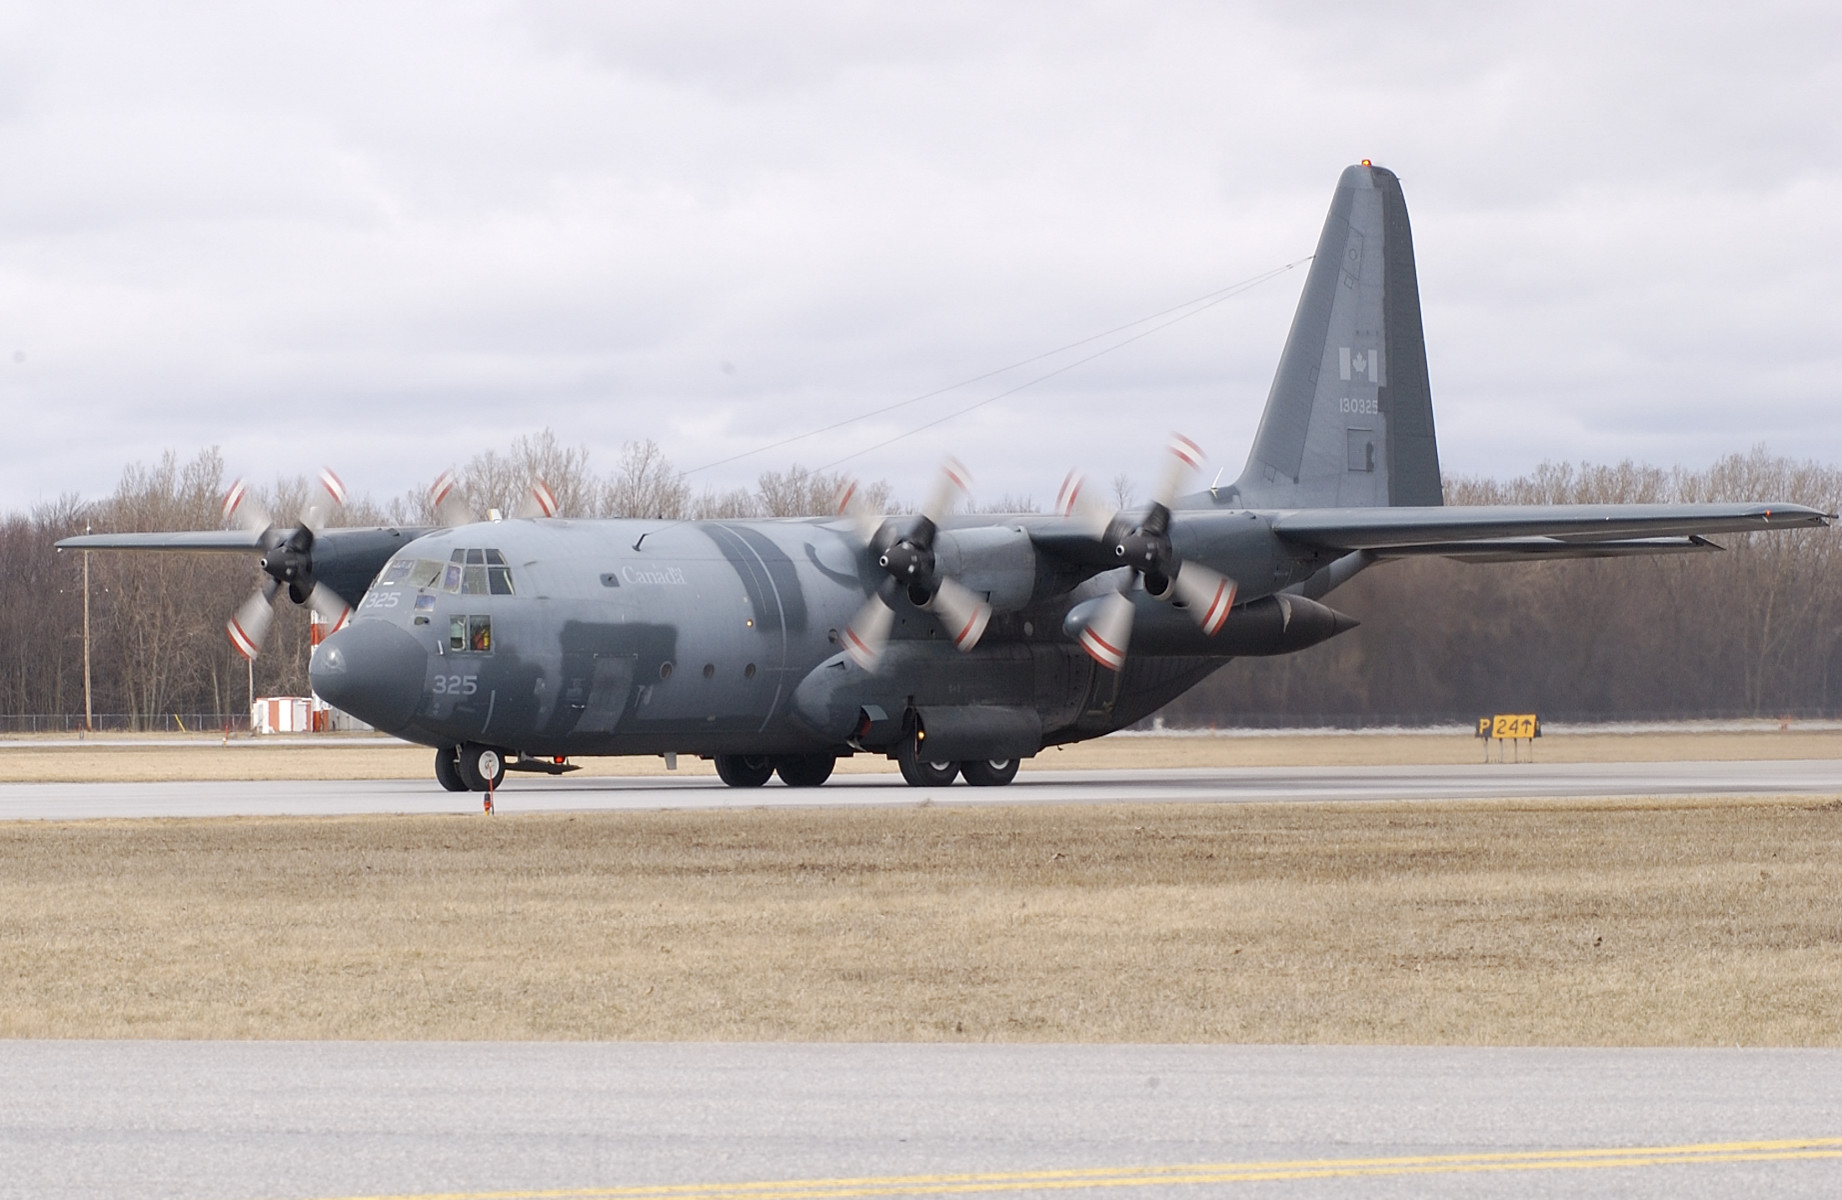 In June 2005, Royal Canadian Air Force CC-130E Hercules No. 325 taxis at 8 Wing Trenton, Ontario. After this Herc was retired in September 2010, all of its potentially dangerous components and its reusable components were removed before it was reduced to scrap for recycling. PHOTO: Private Frieda Van Putten